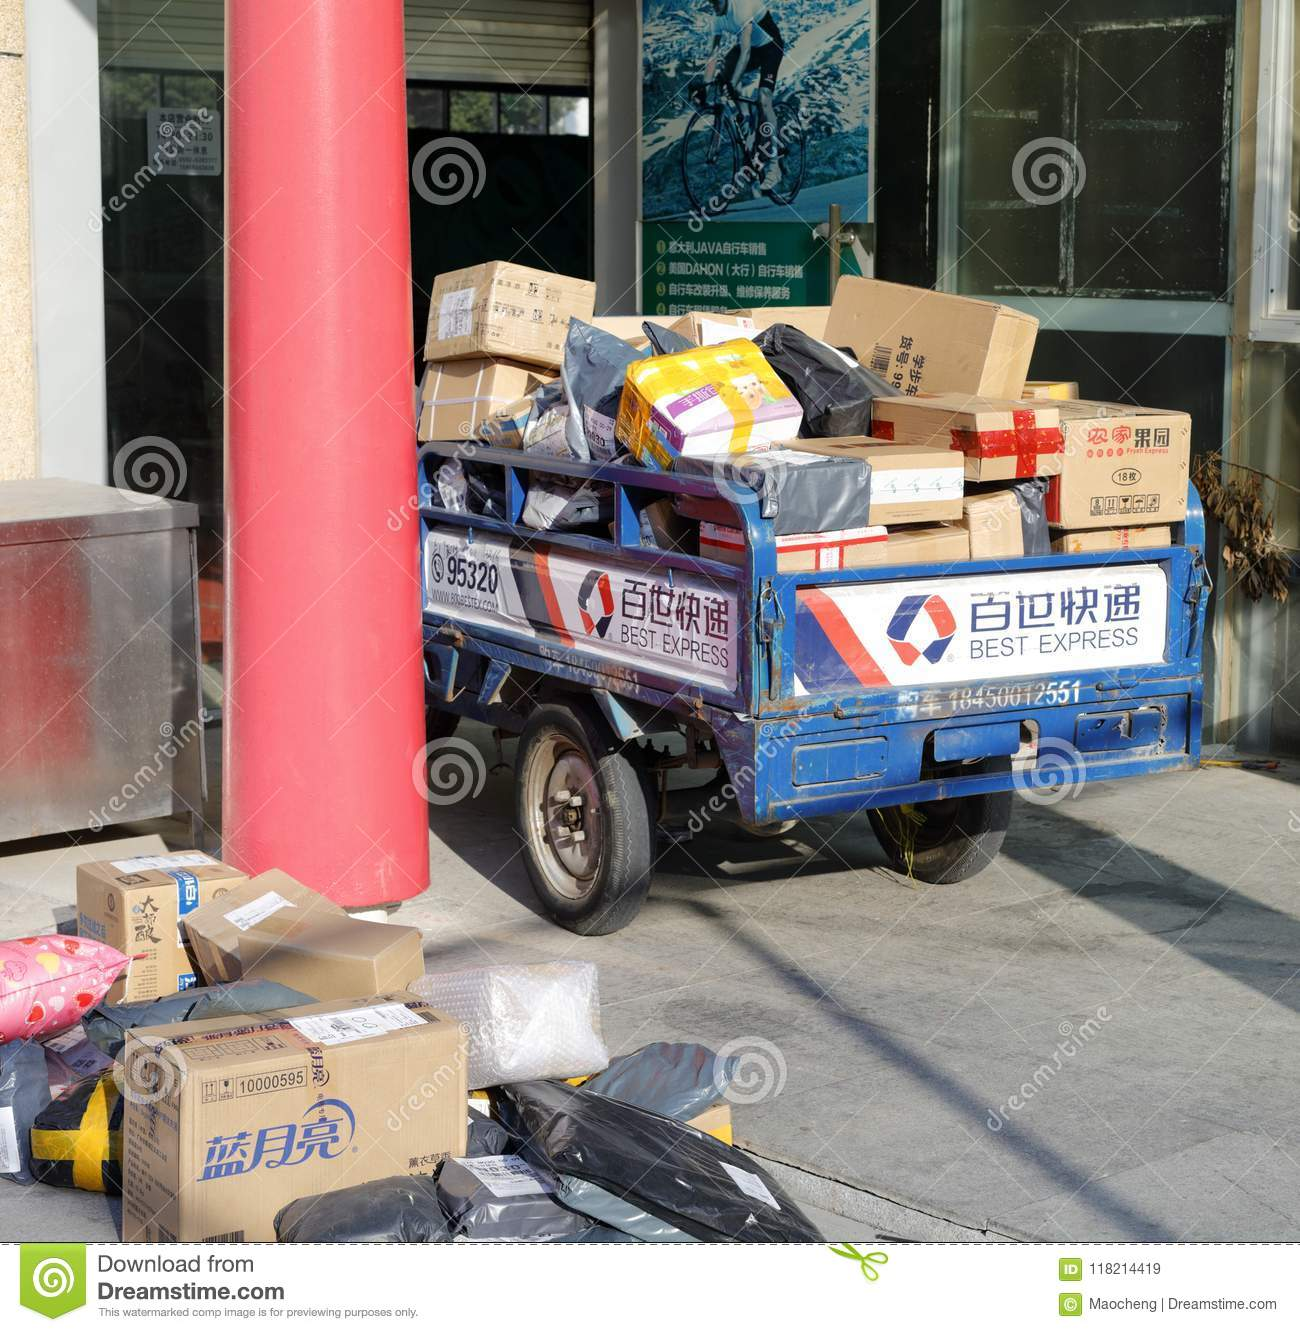 The Three-wheeled Motorcycle Truck Of Best Express Delivery